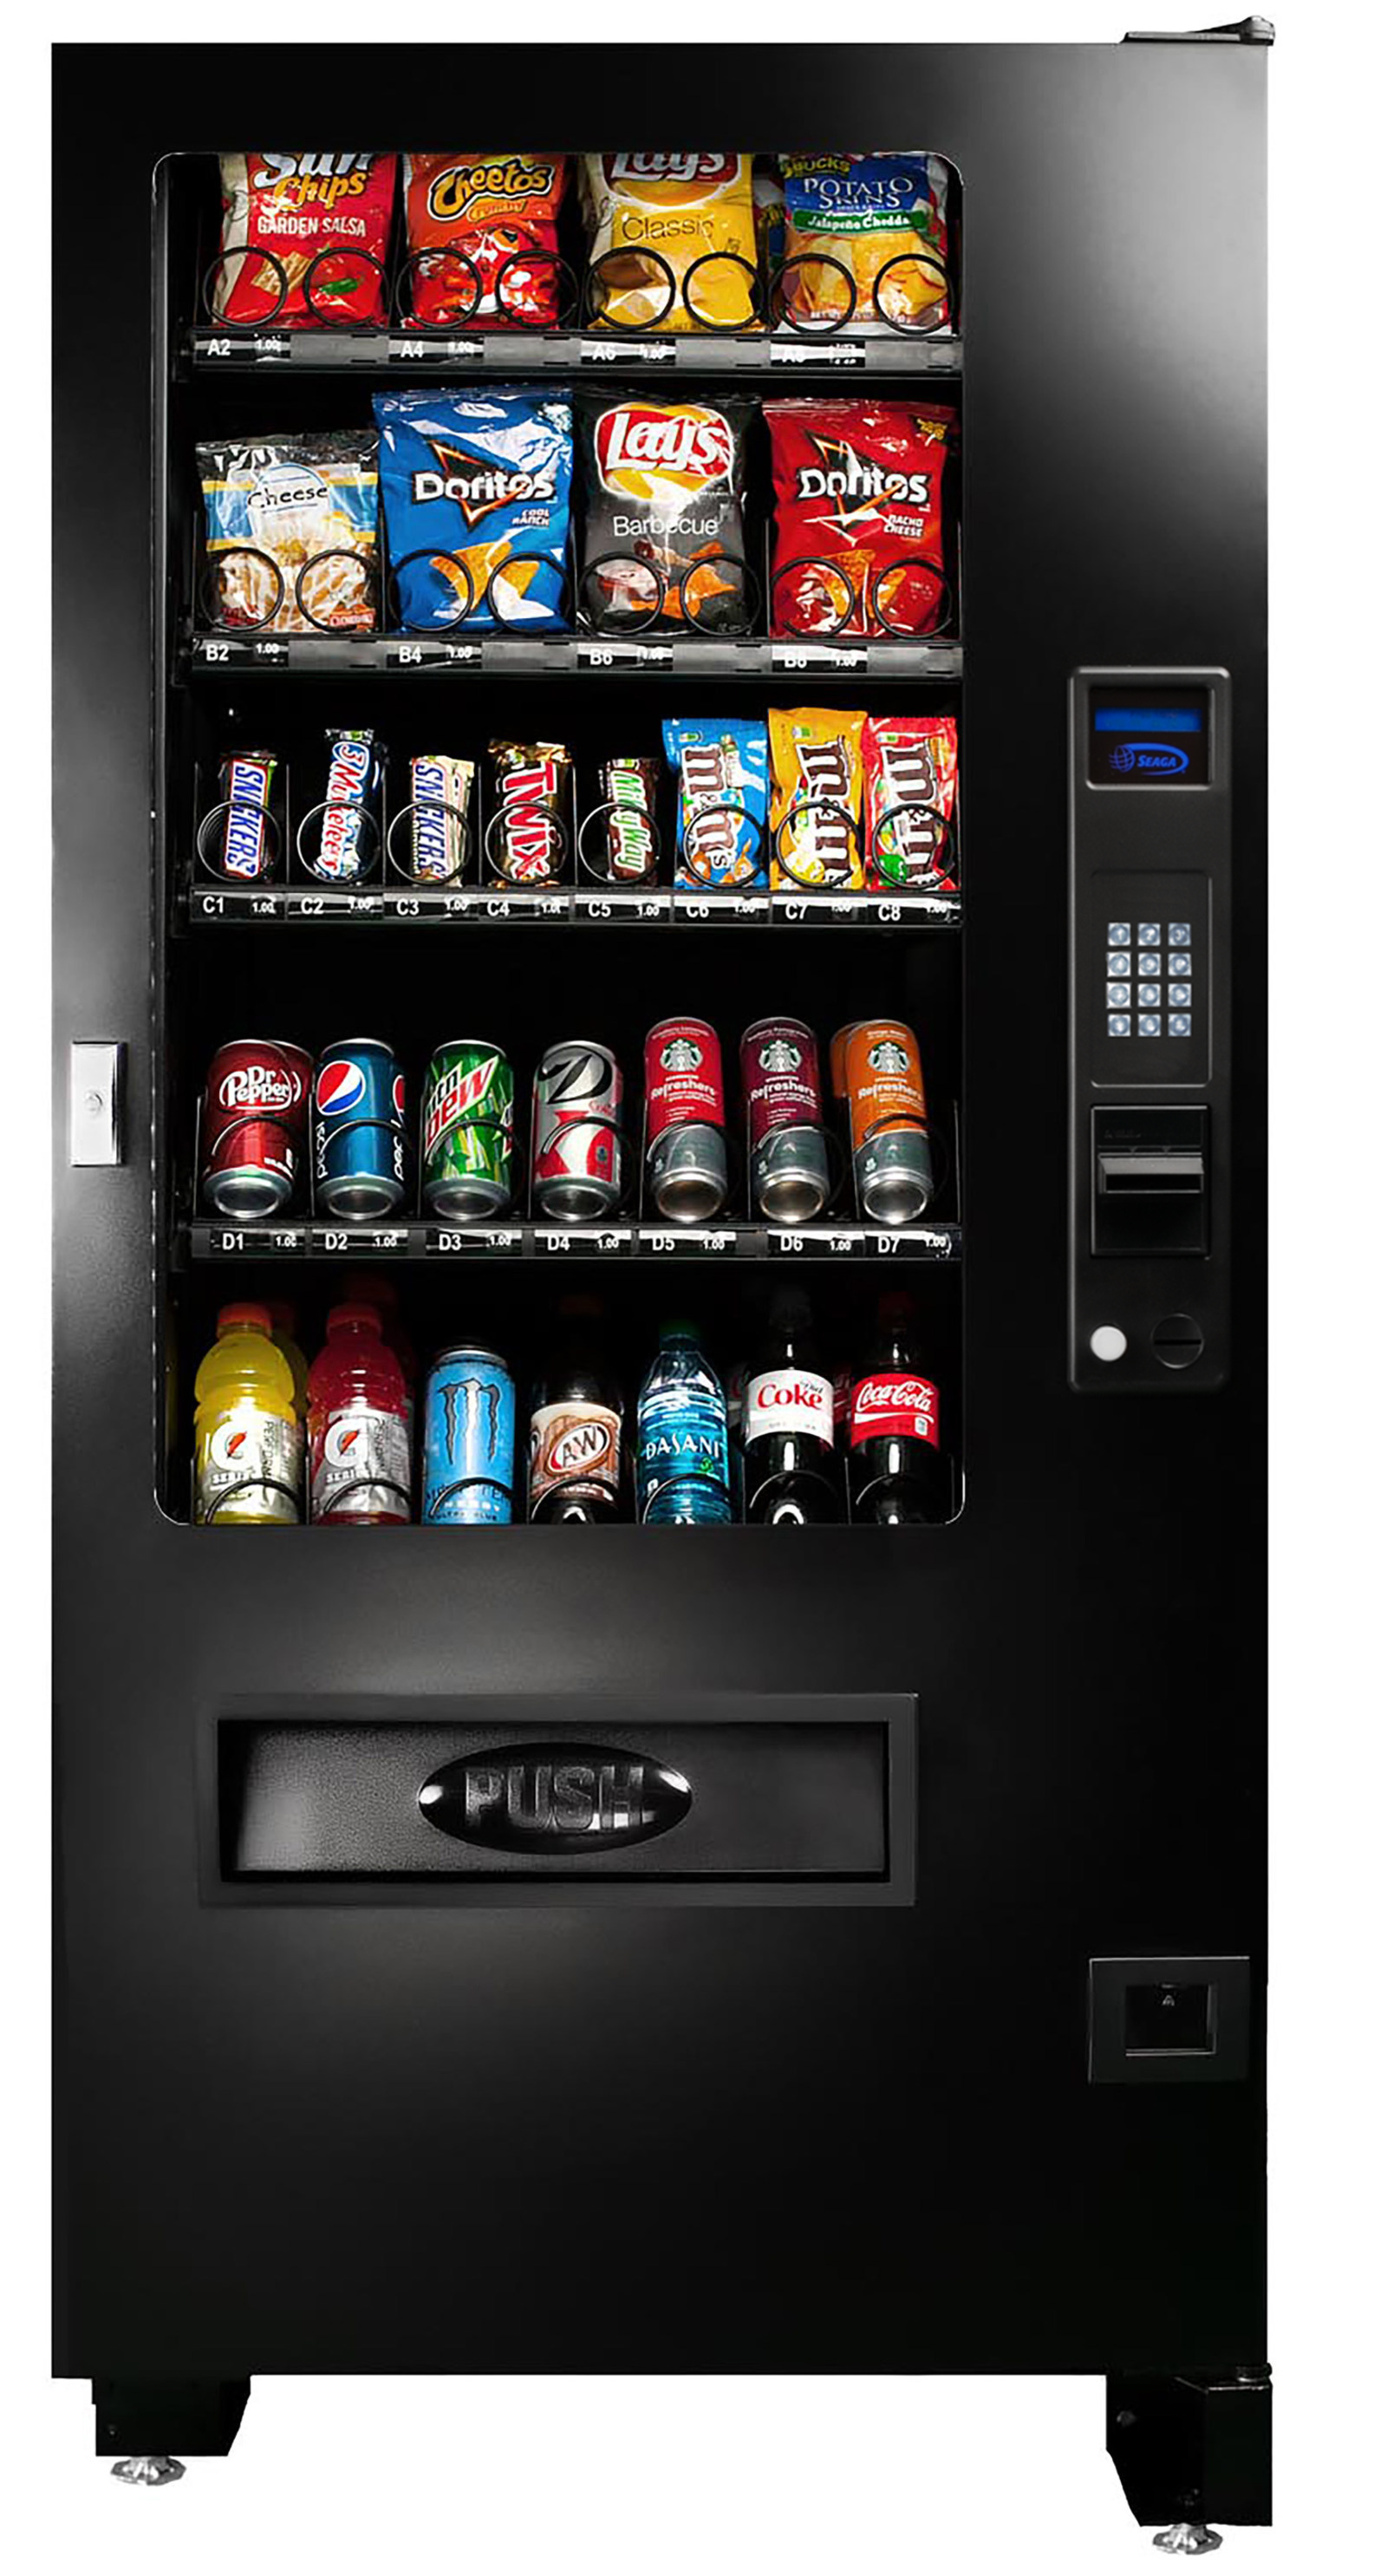 INF4C is great for locations with limited space and that don't need separate merchandisers for beverages & food..